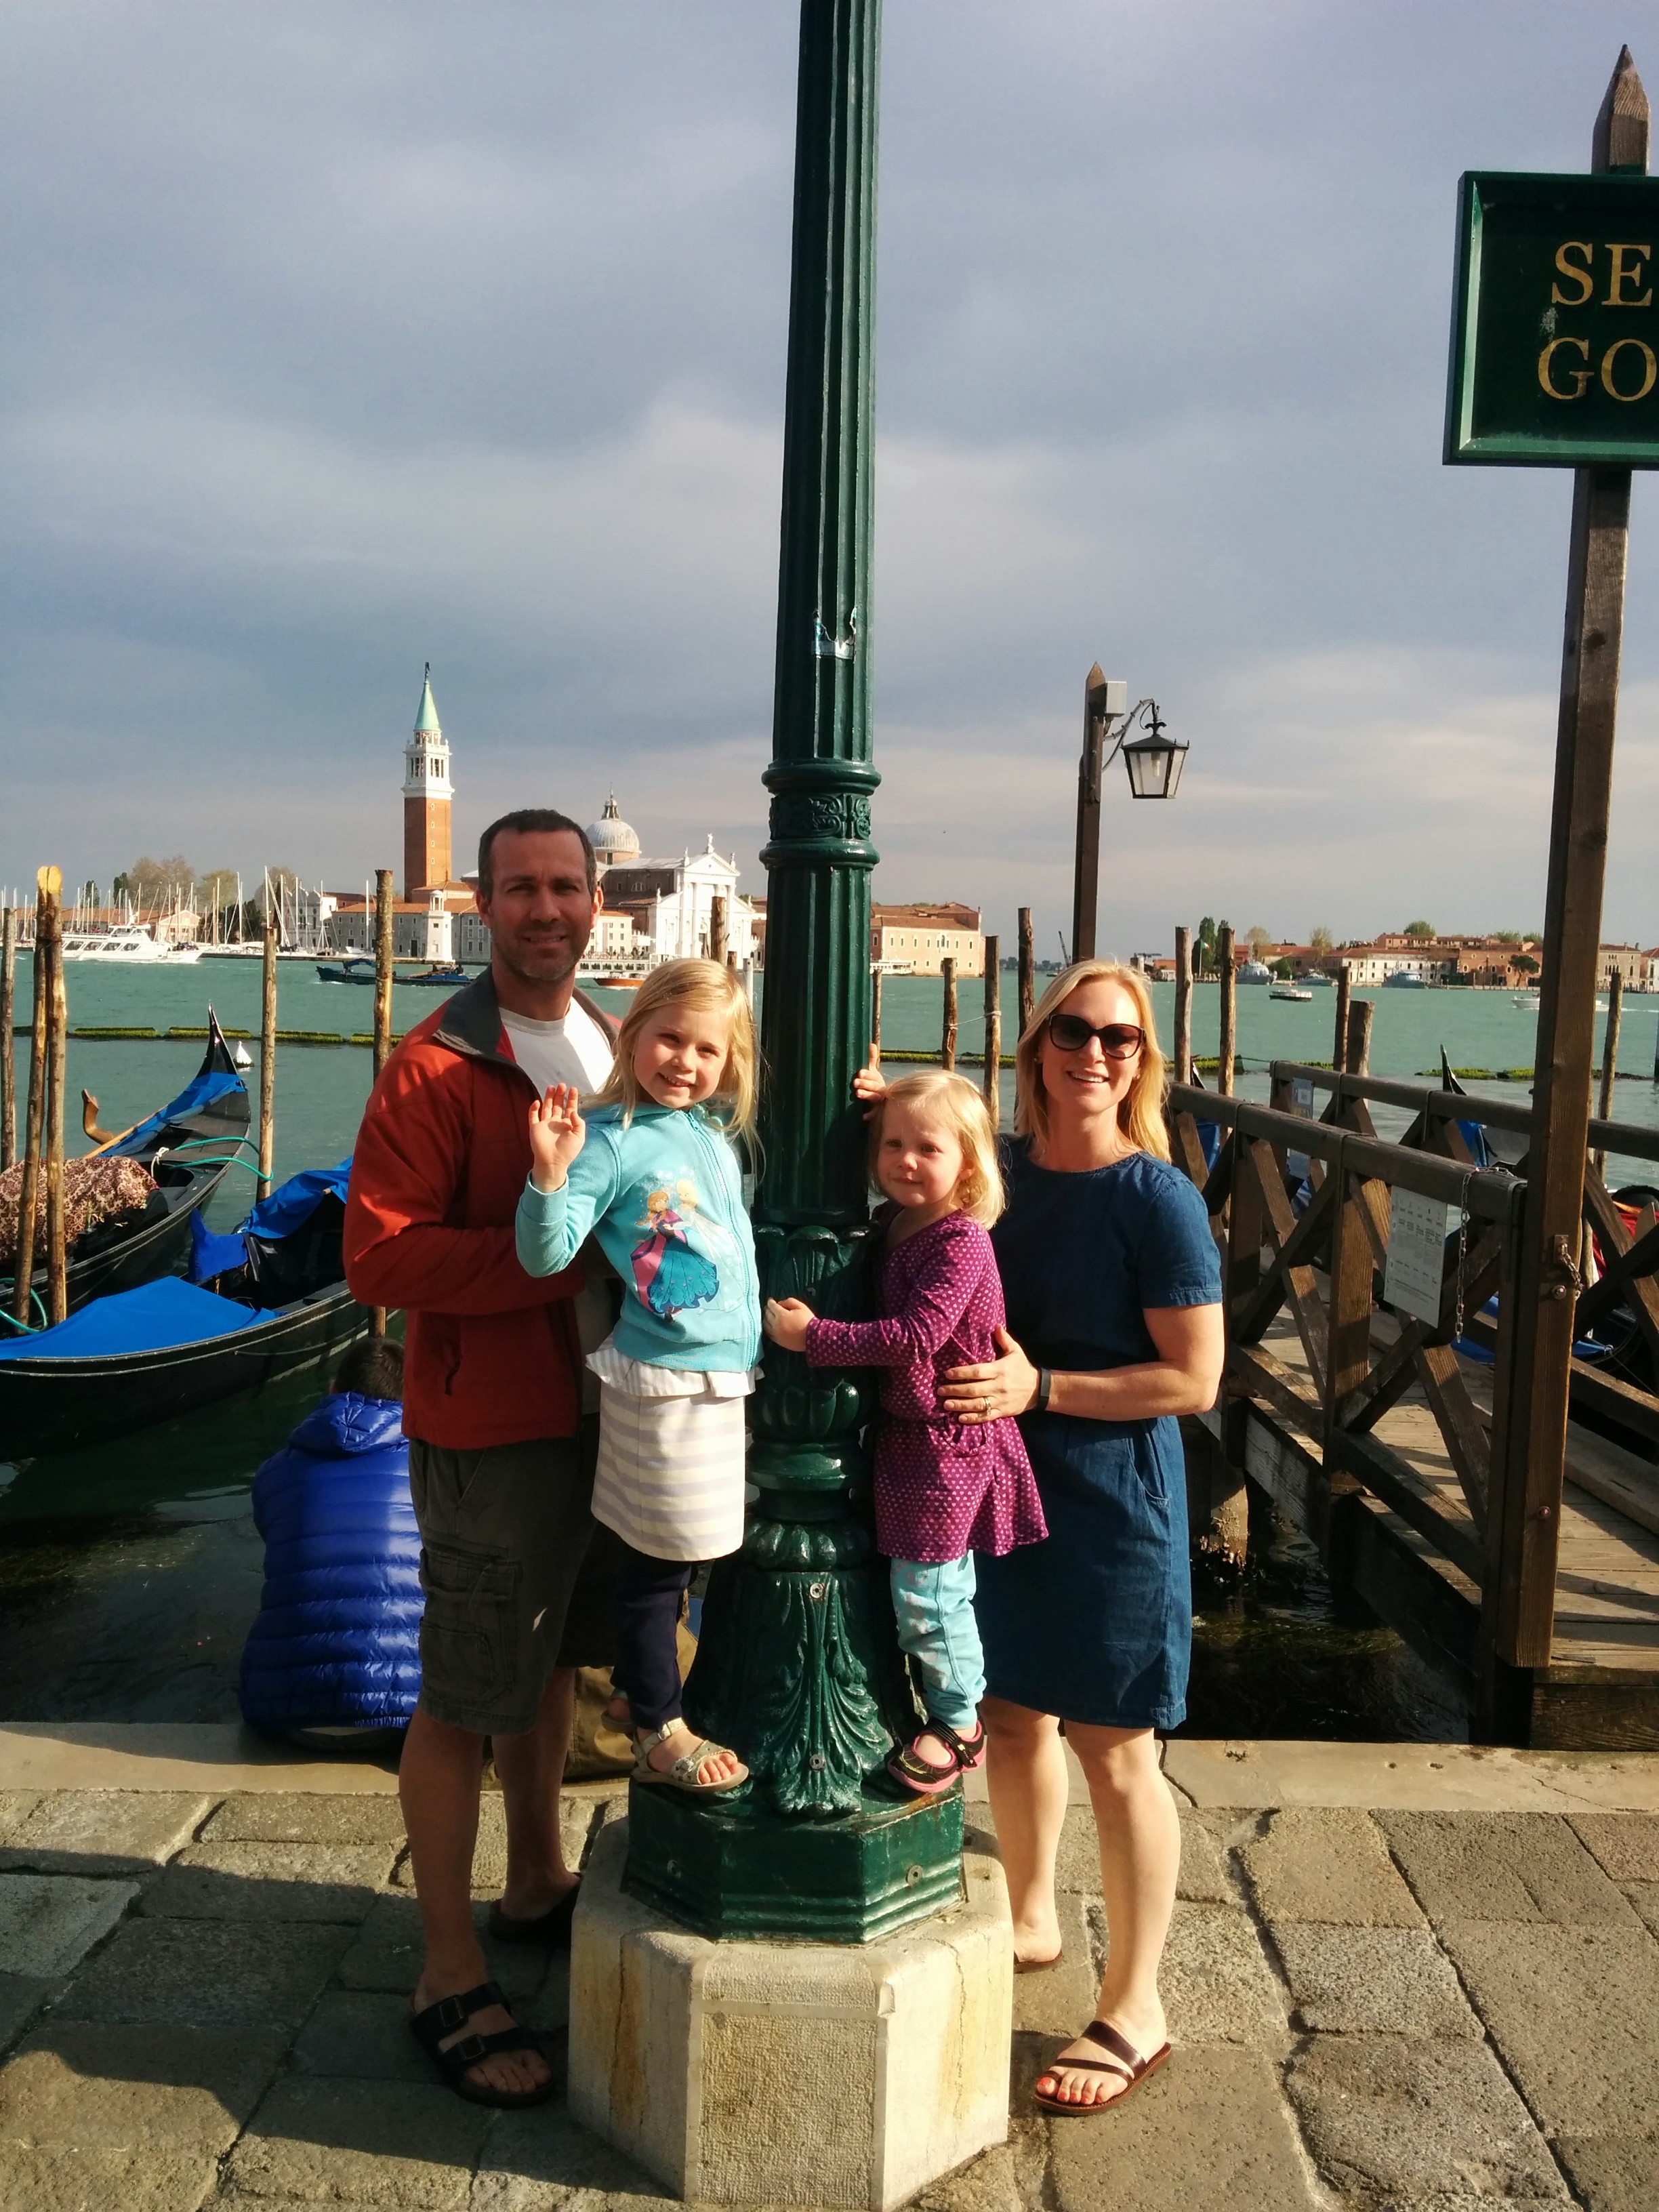 Our Venice Holiday